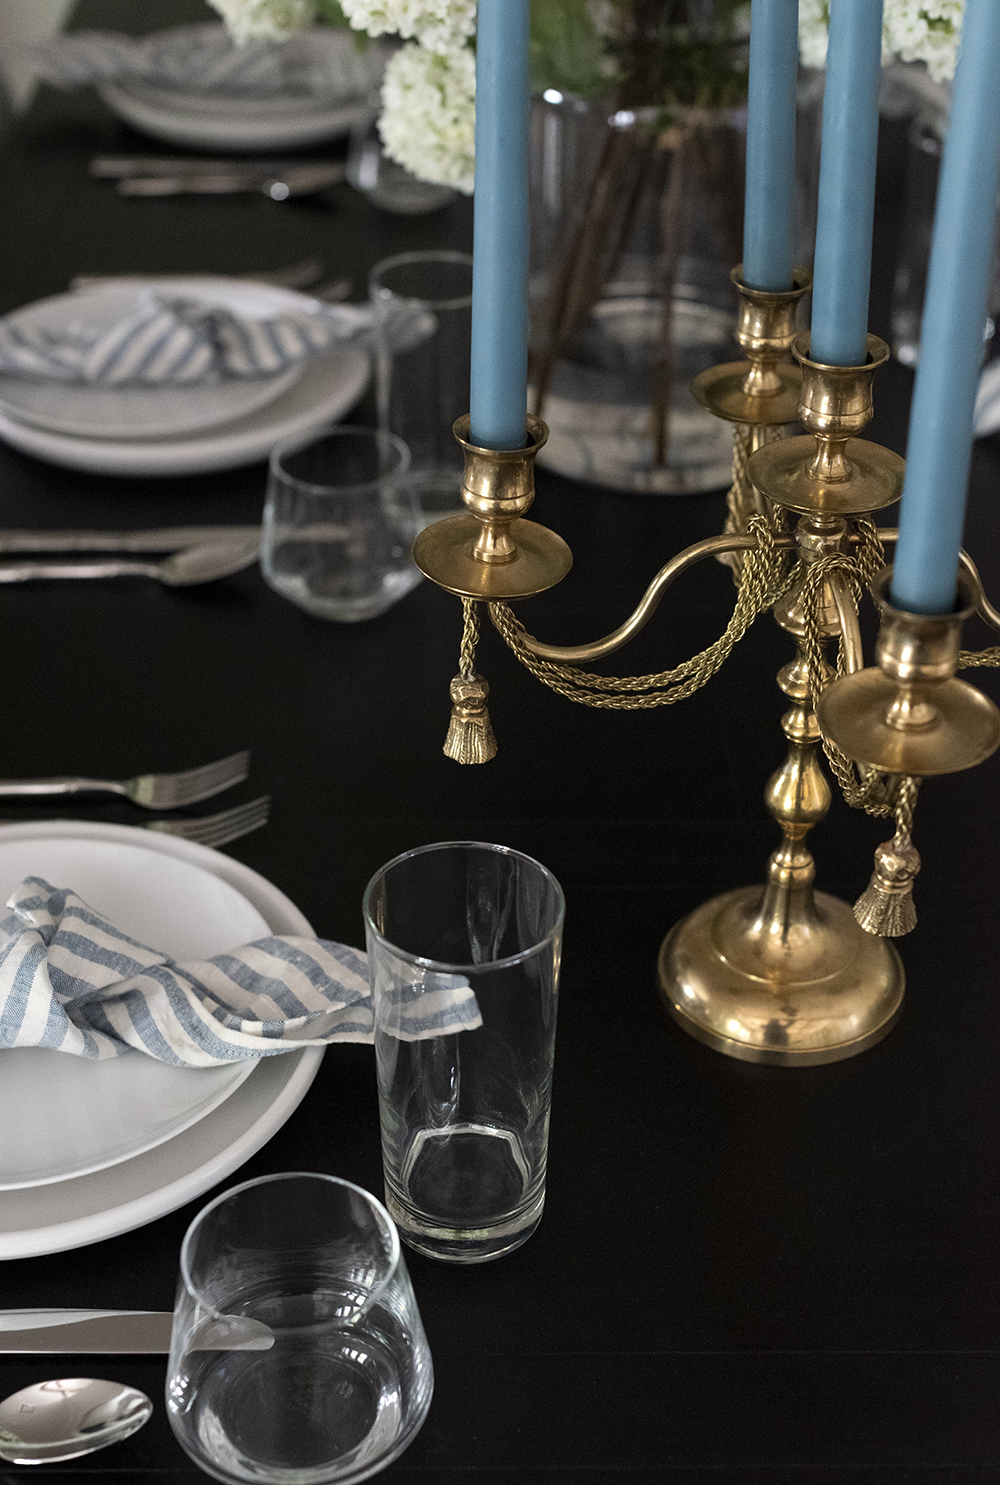 The Last Piece of Our Dining Set Puzzle - roomfortuesday.com